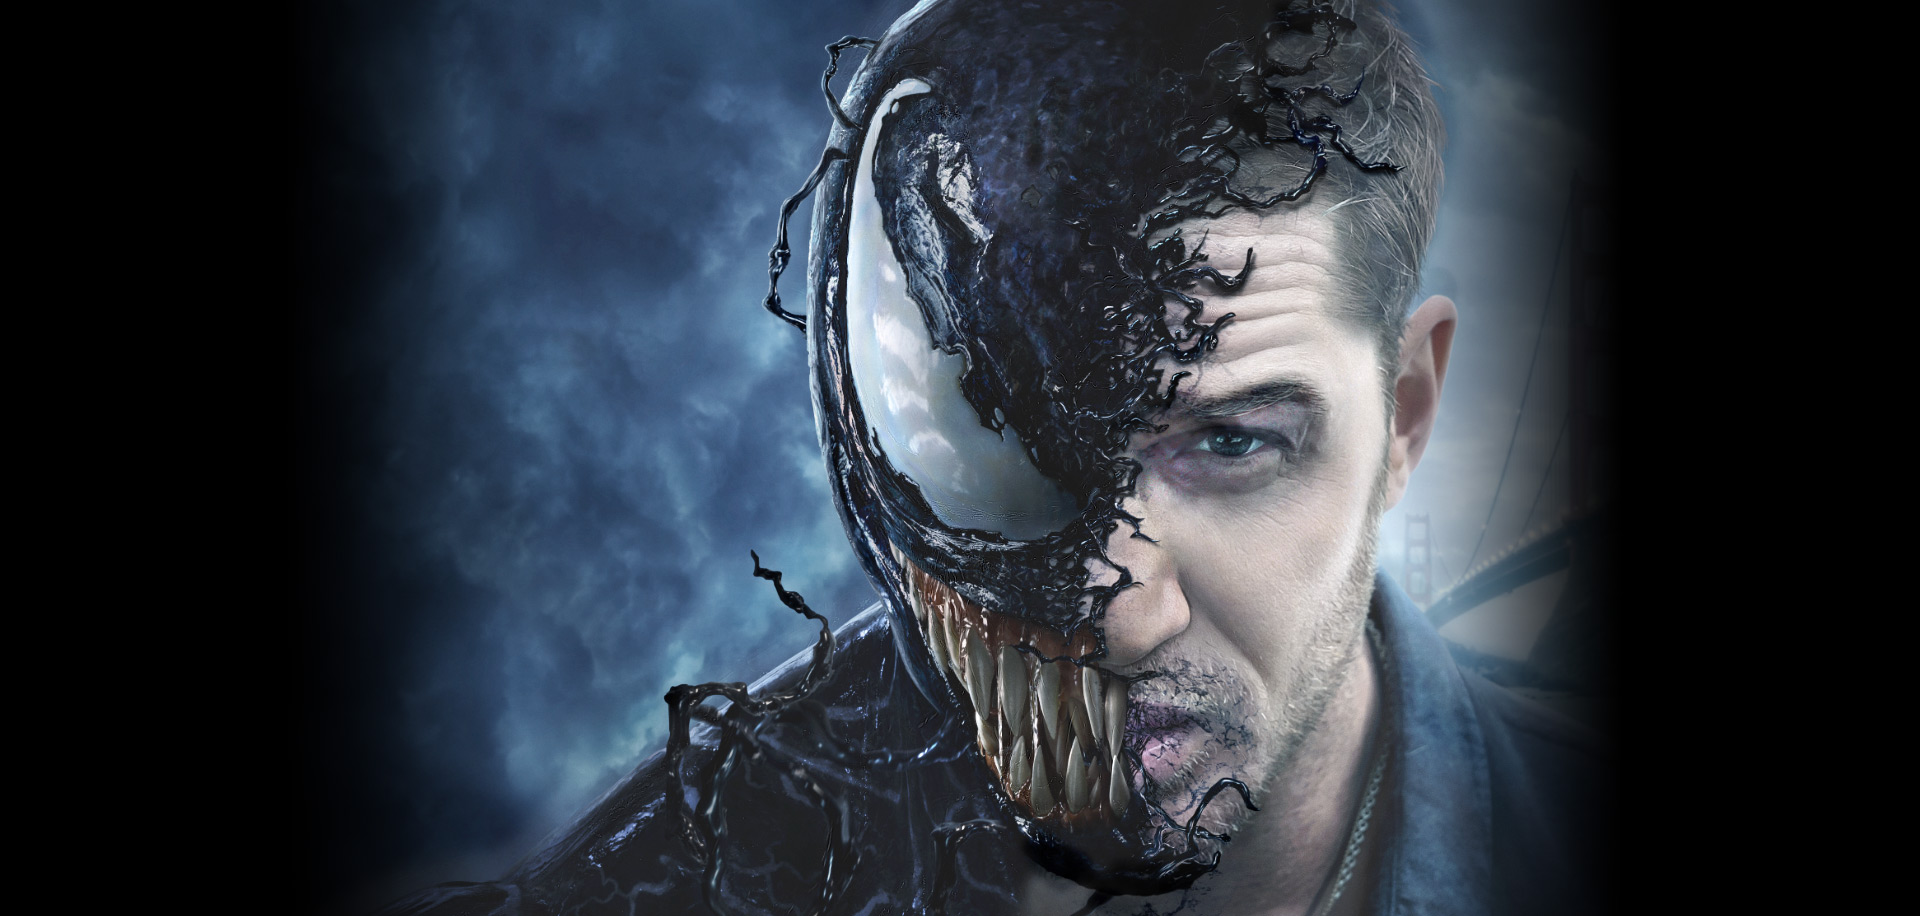 venom Checkout This Epic New 'Venom' Movie Trailer bg